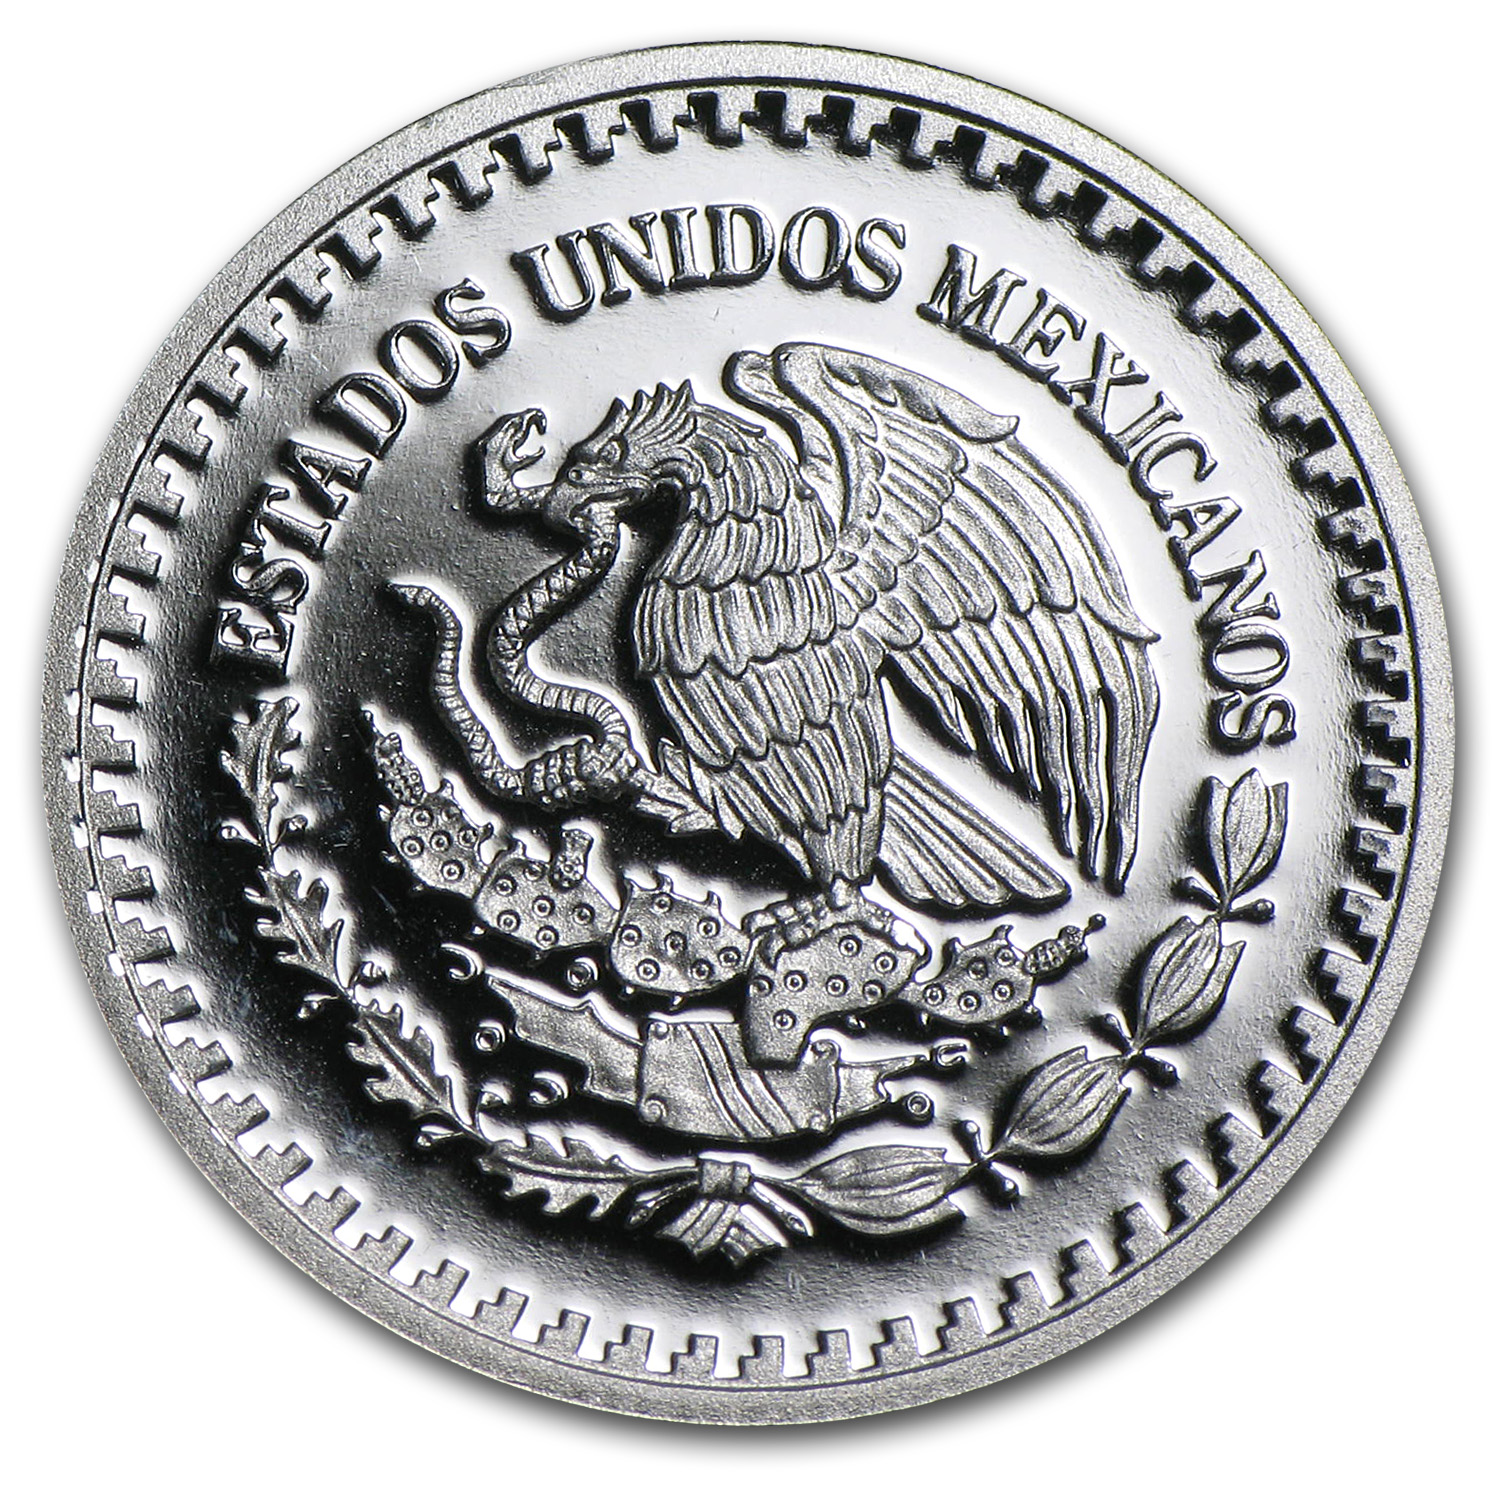 2013 Mexico 1/10 oz Silver Libertad Proof (In Capsule)